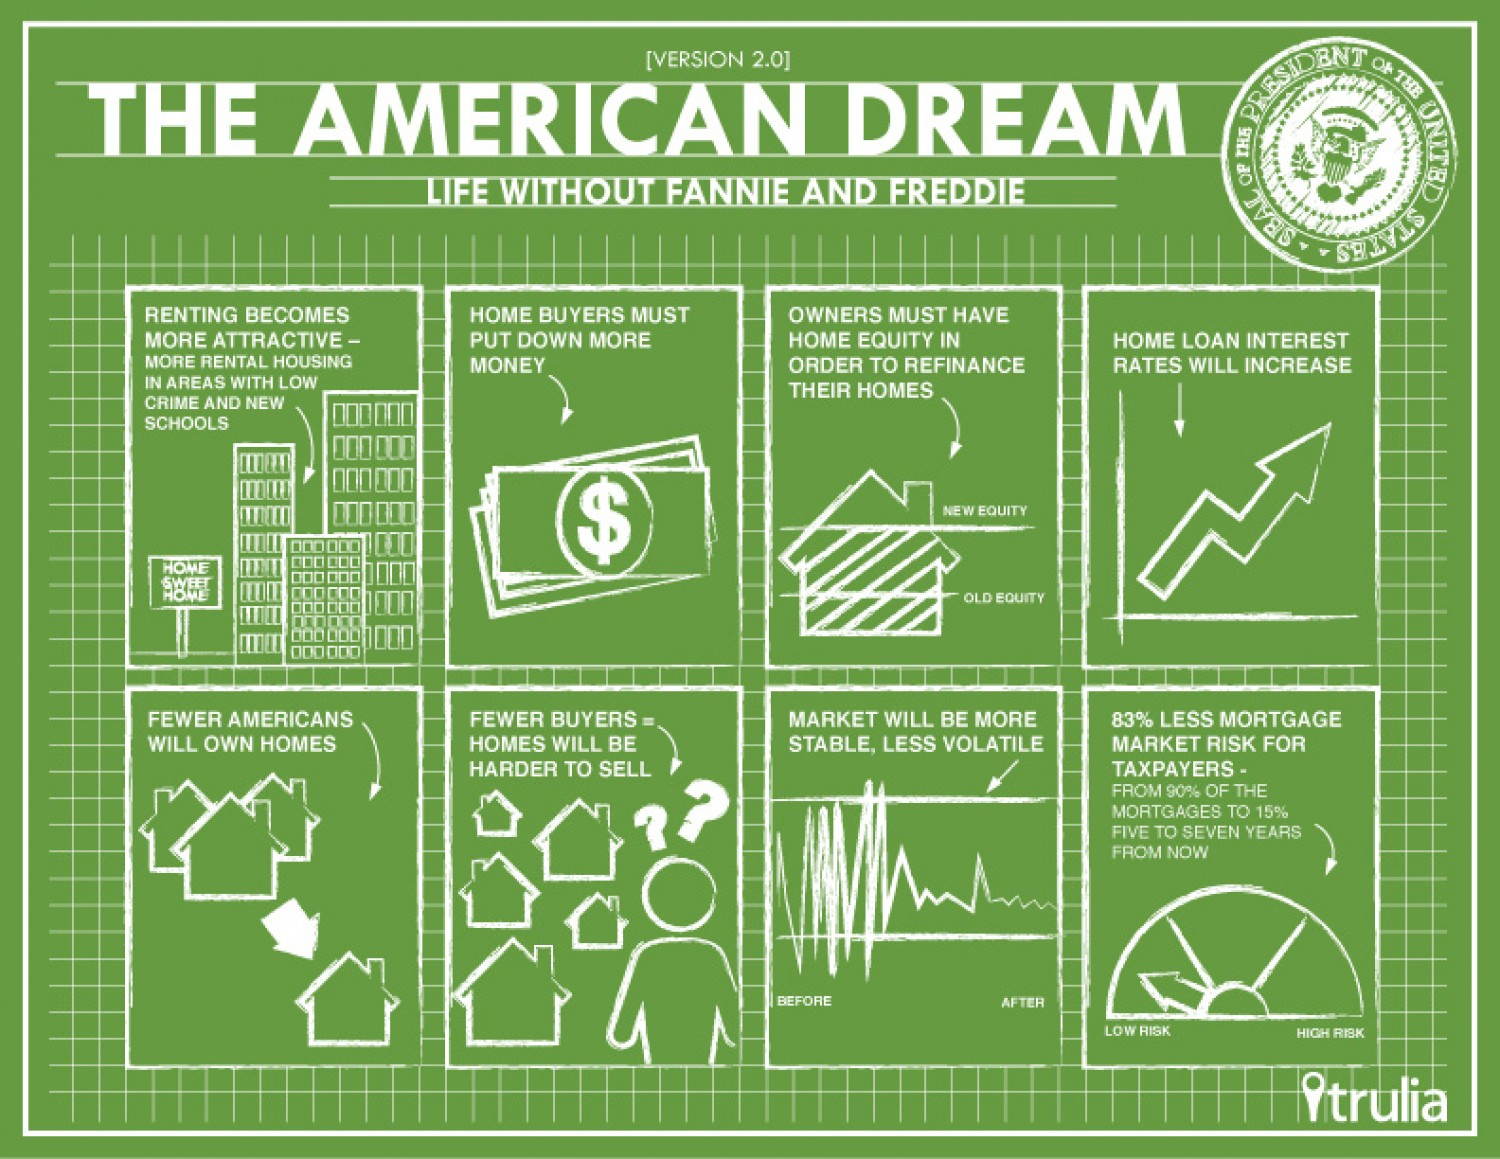 The New American Dream - Freedom Beyond Wealth